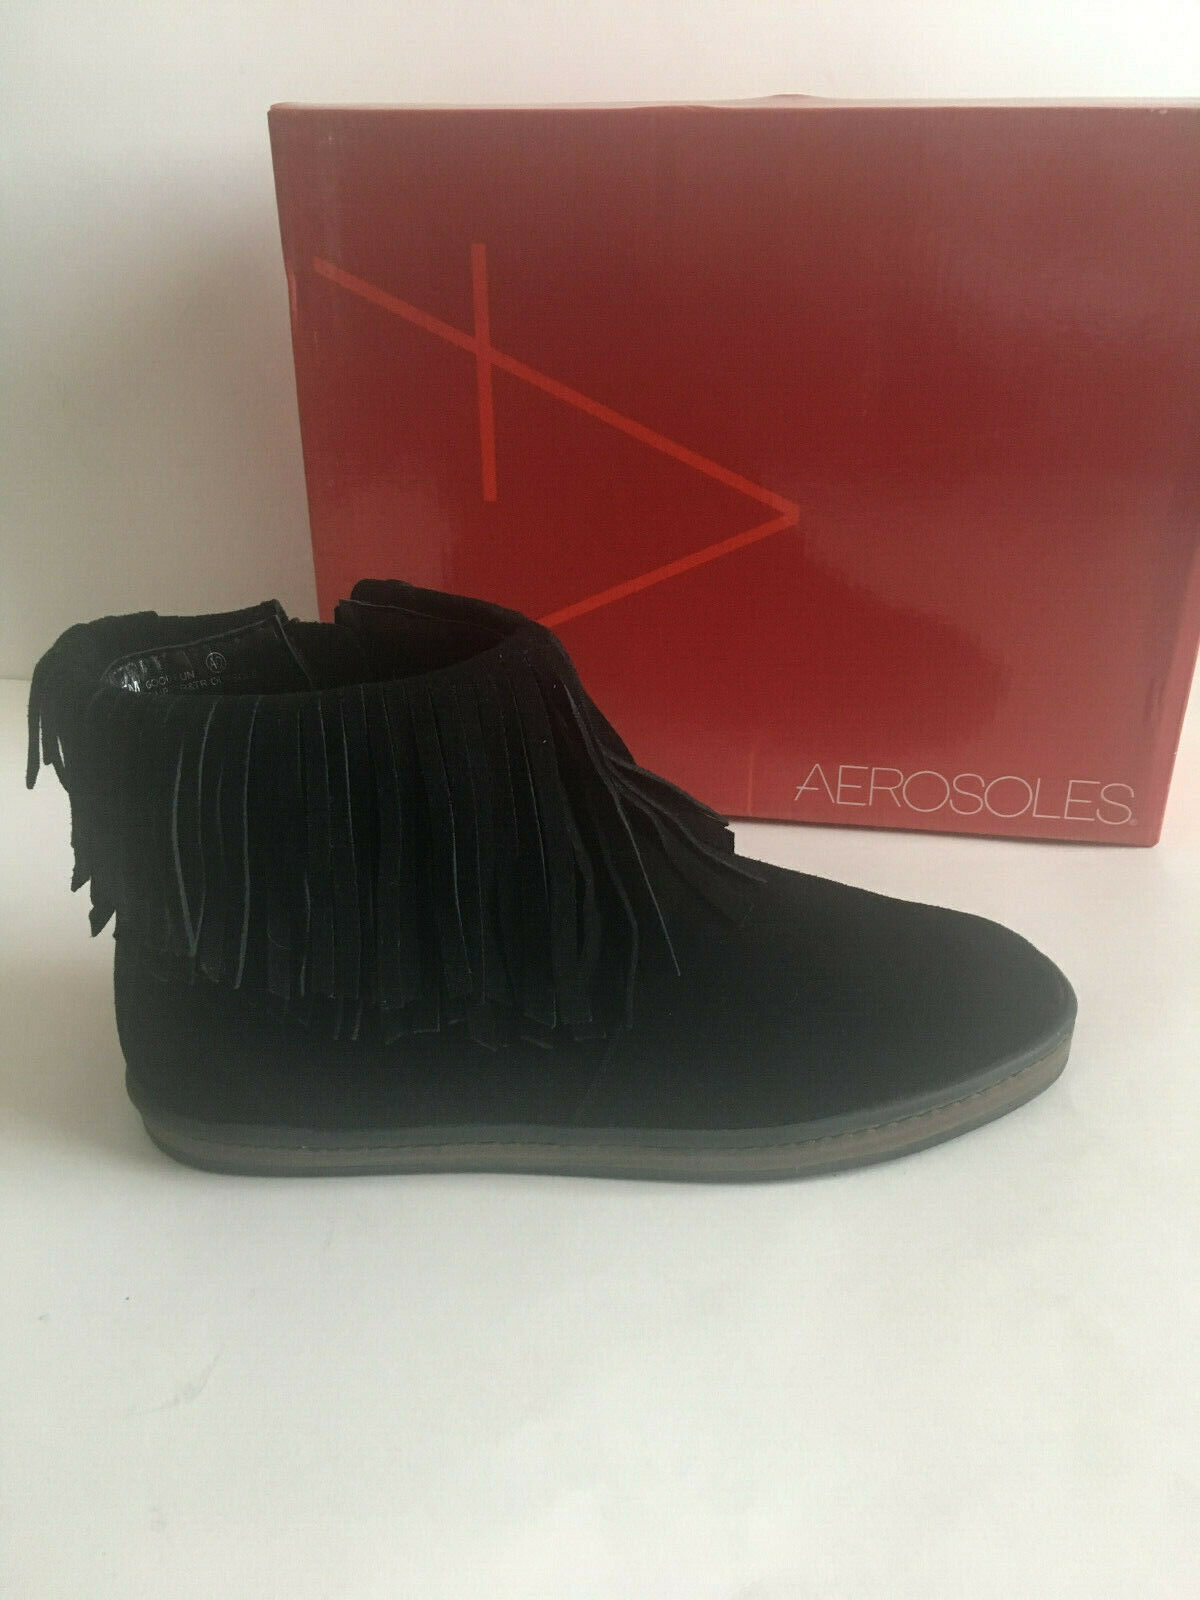 New AEROSOLES GOOD FUN Black Suede Leather Fringe Ankle Boots US Sz 9M